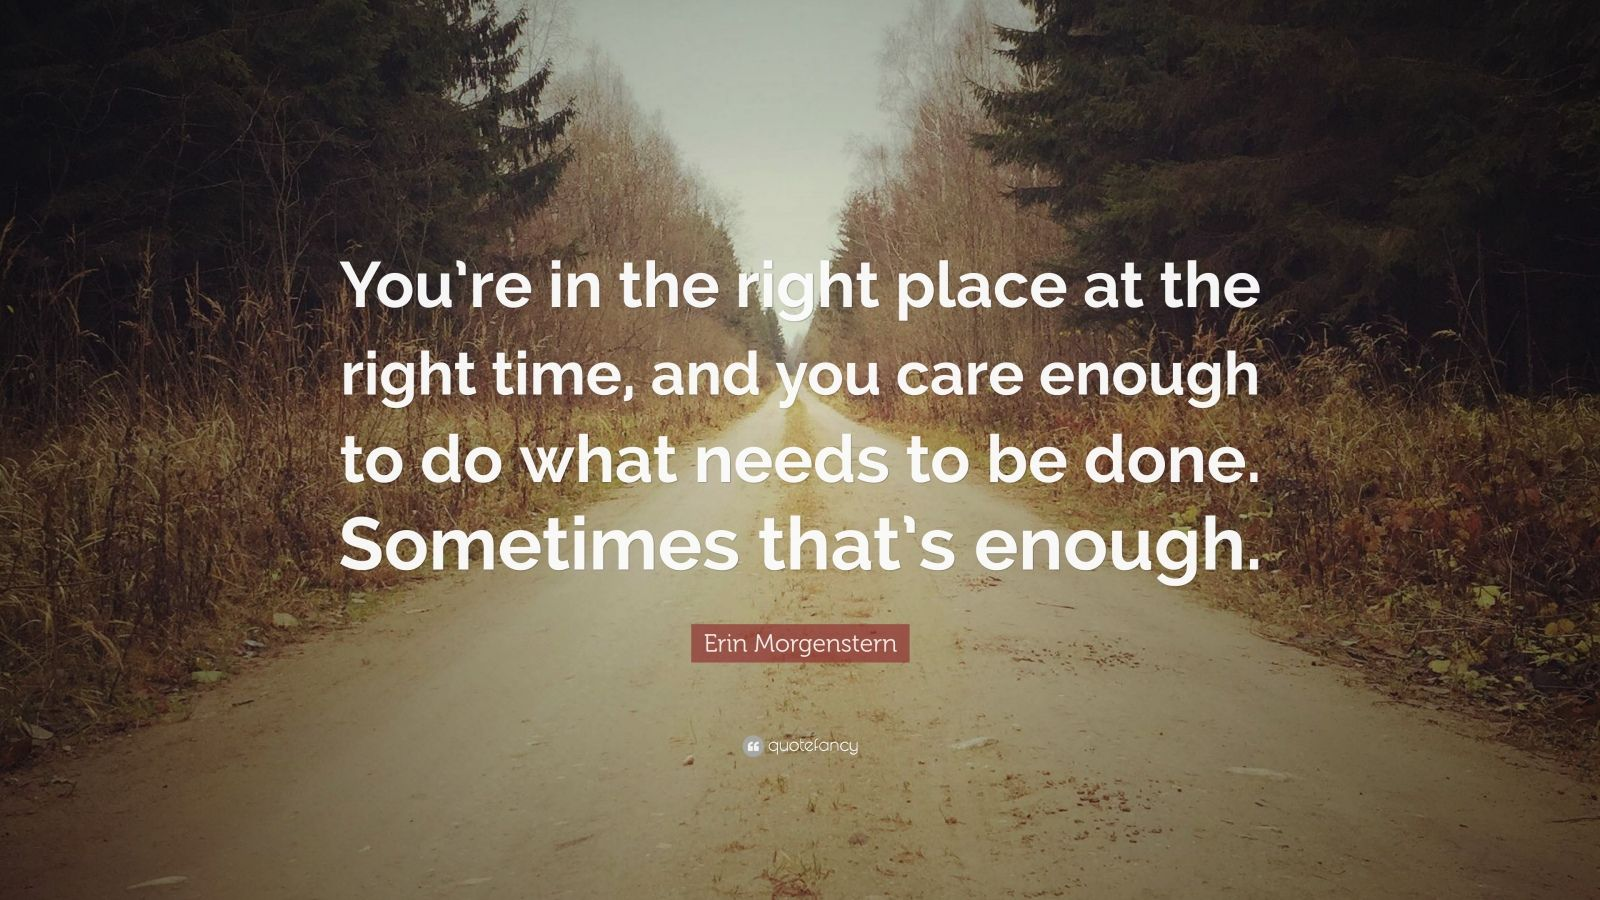 """Erin Morgenstern Quote: """"You're in the right place at the right time, and you care enough to do what needs to be done. Sometimes that's enough."""""""